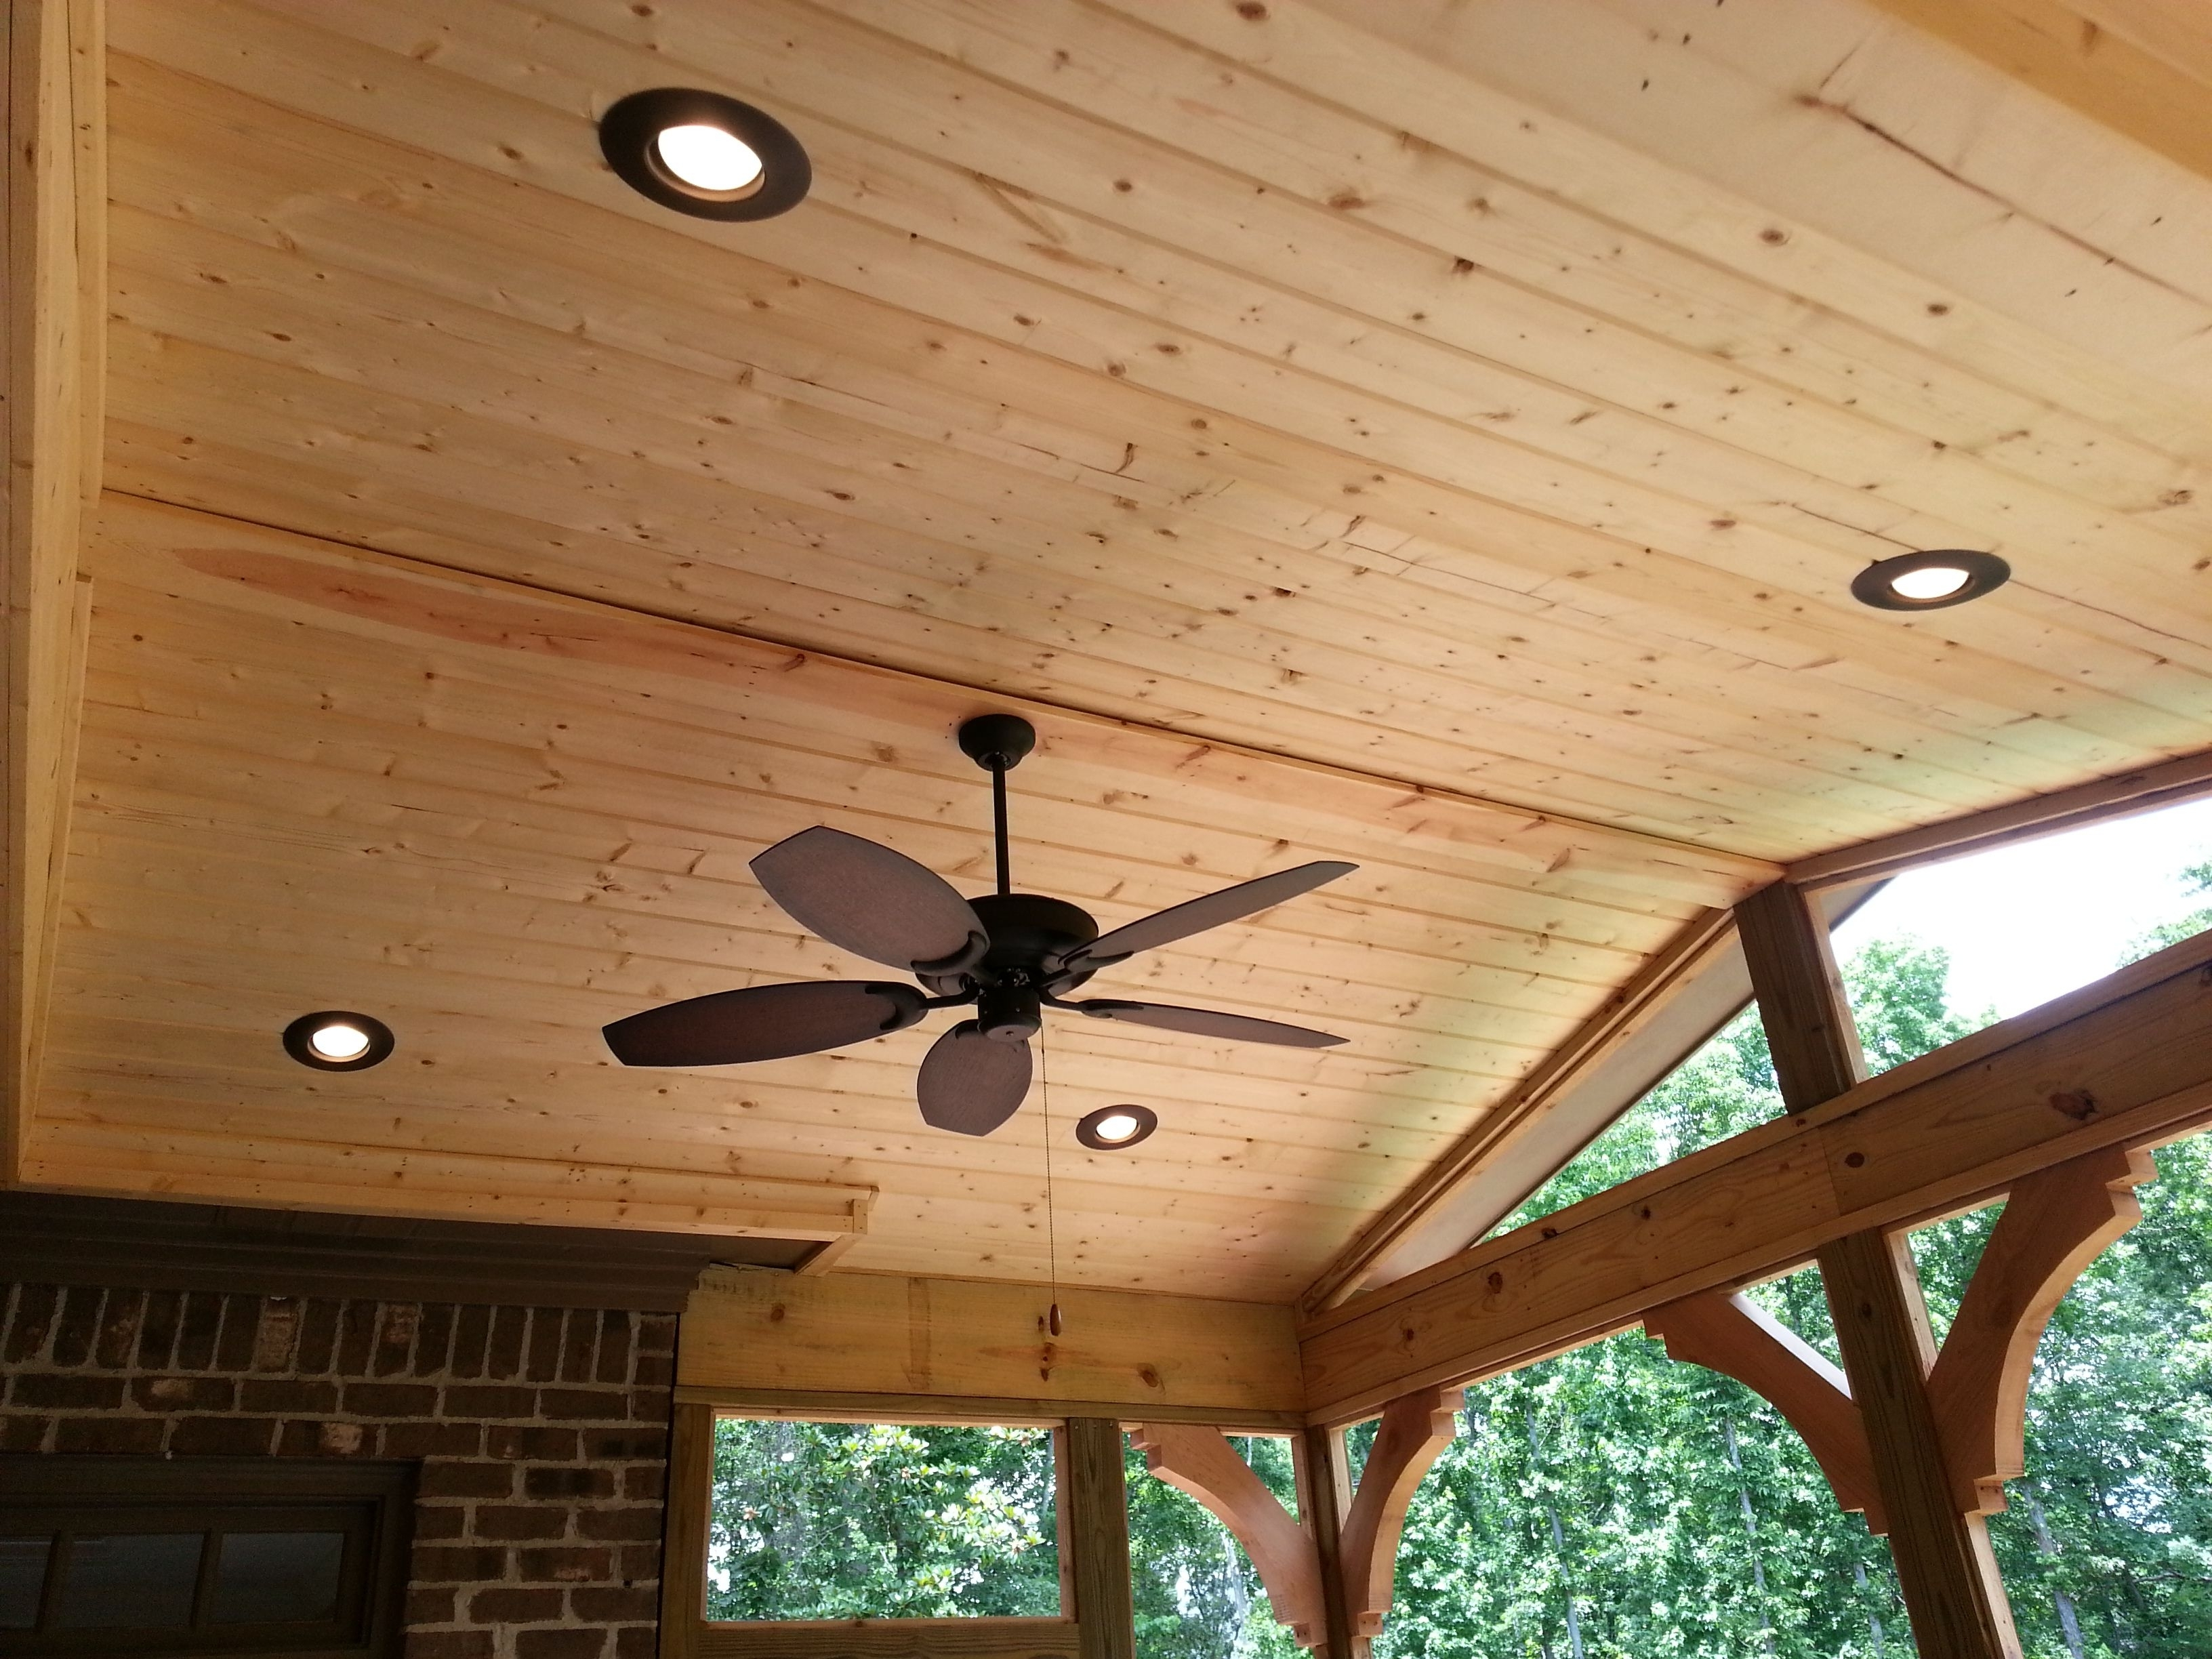 Most Up To Date Outdoor Ceiling Fans For Decks Inside Finished Ceiling With Ceiling Fan And Can Lights – Design Ideas (View 14 of 20)